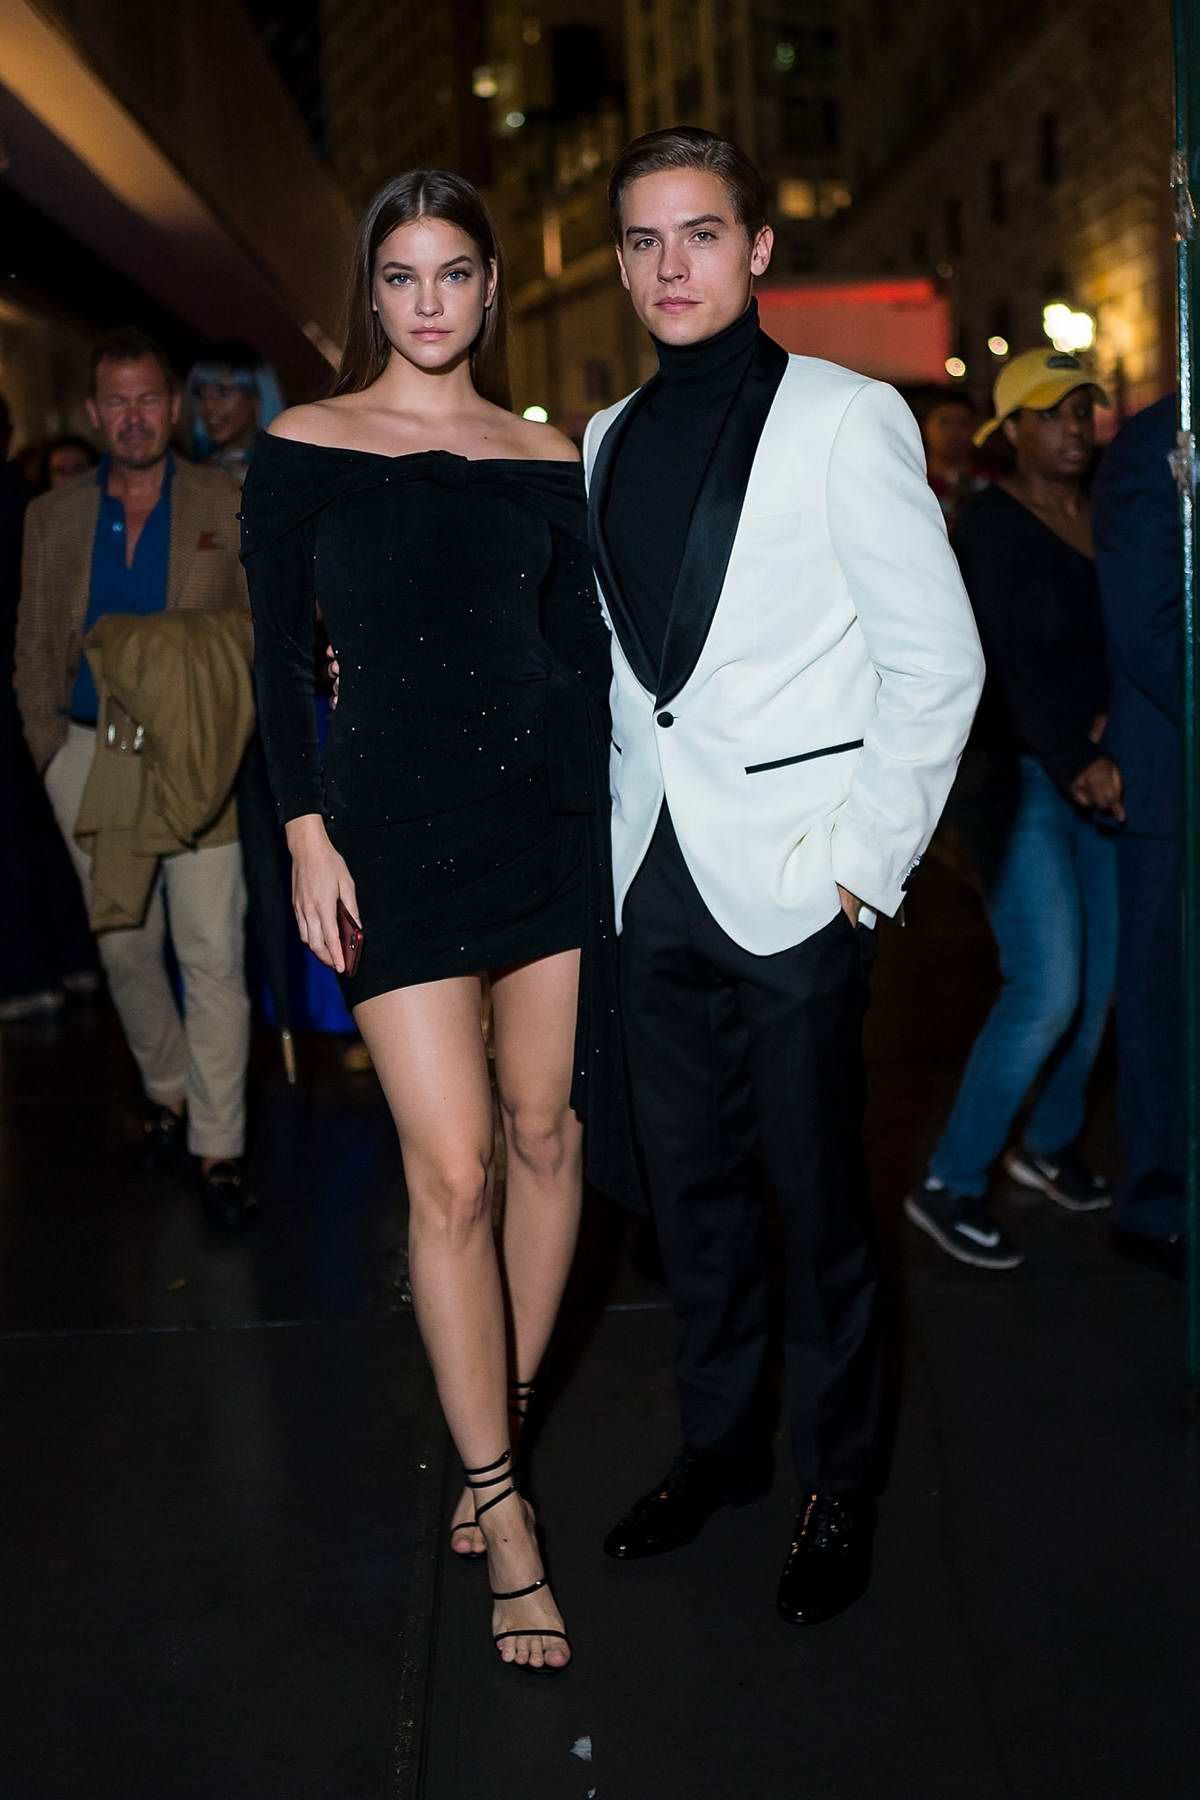 Barbara Palvin and Dylan Sprouse attends Vanity Fair and Saks Fifth Avenue celebrate Vanity Fair's Best-Dressed 2018 at Manhatta in New York City